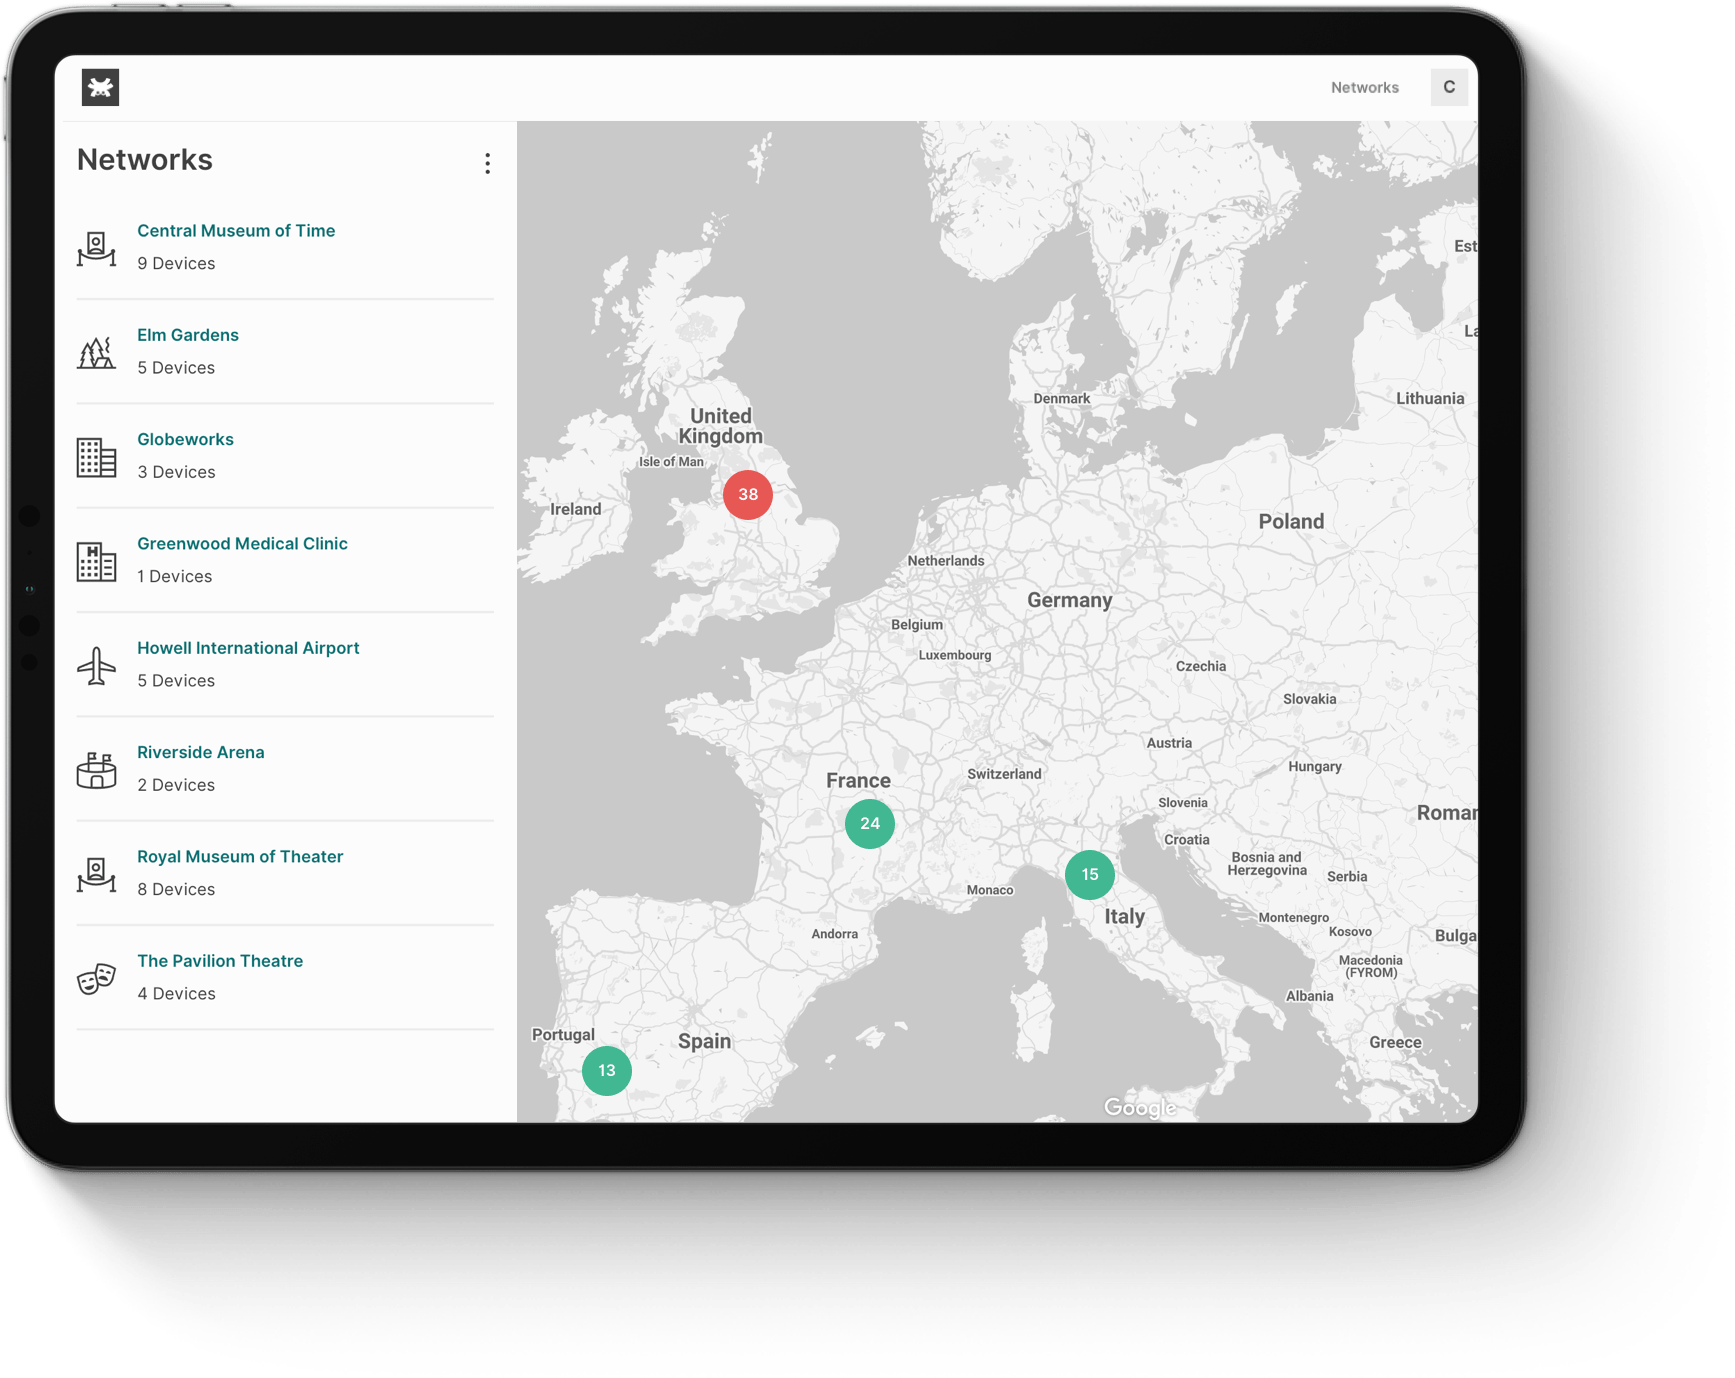 TanazaOS demo - list of connected access points